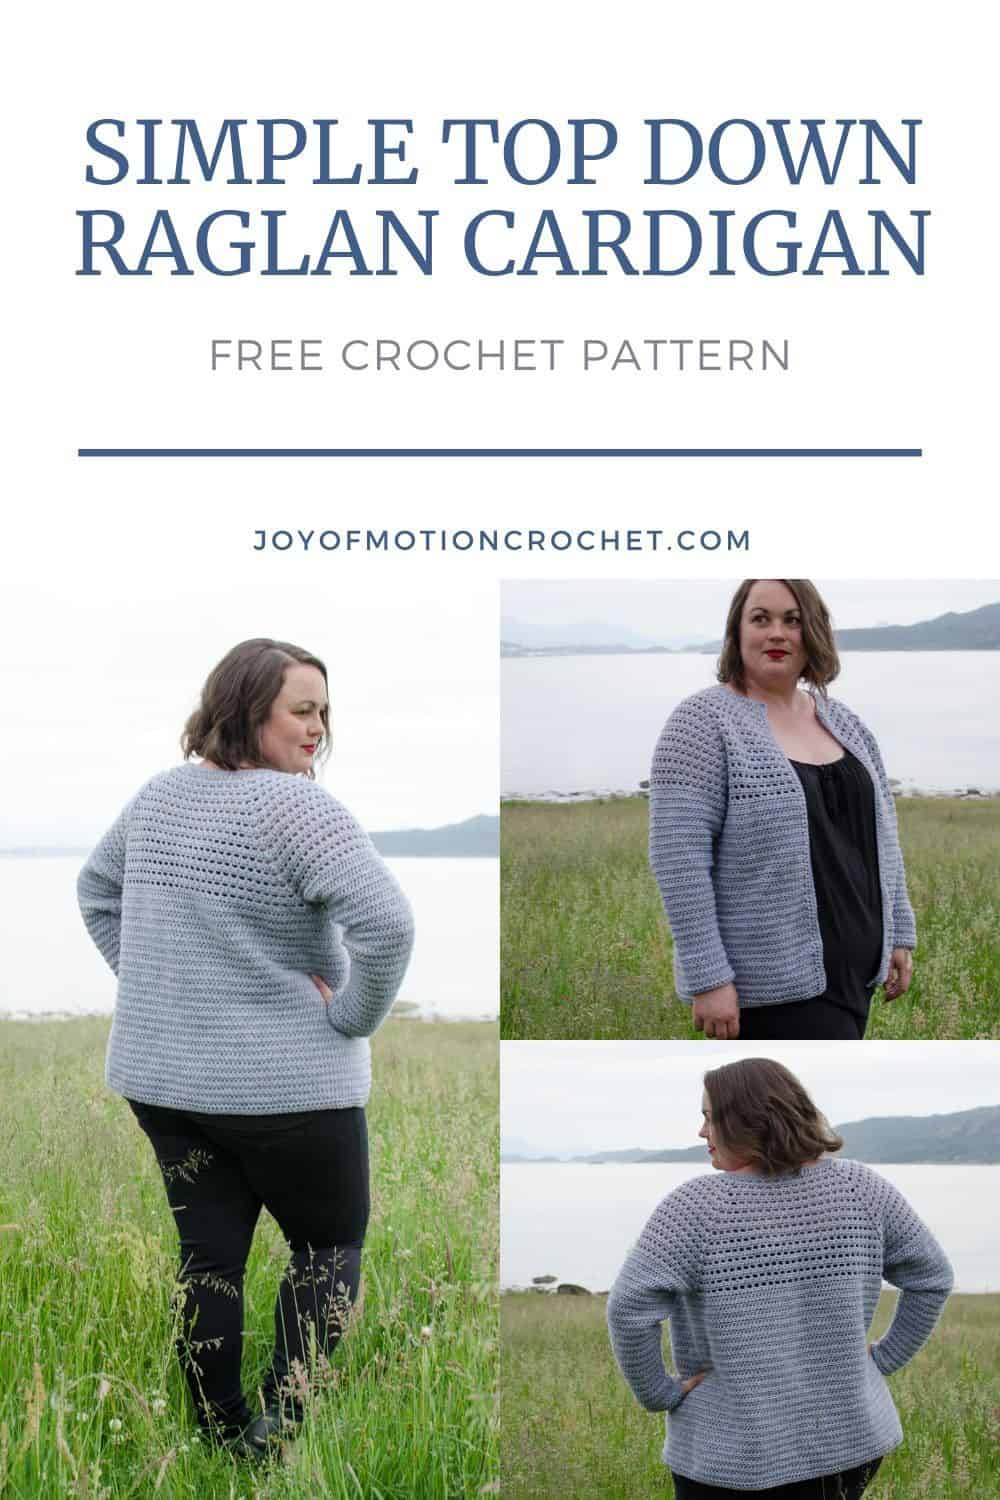 Simple Top Down Raglan Cardigan for Women, XS-5XL-b1-jpg